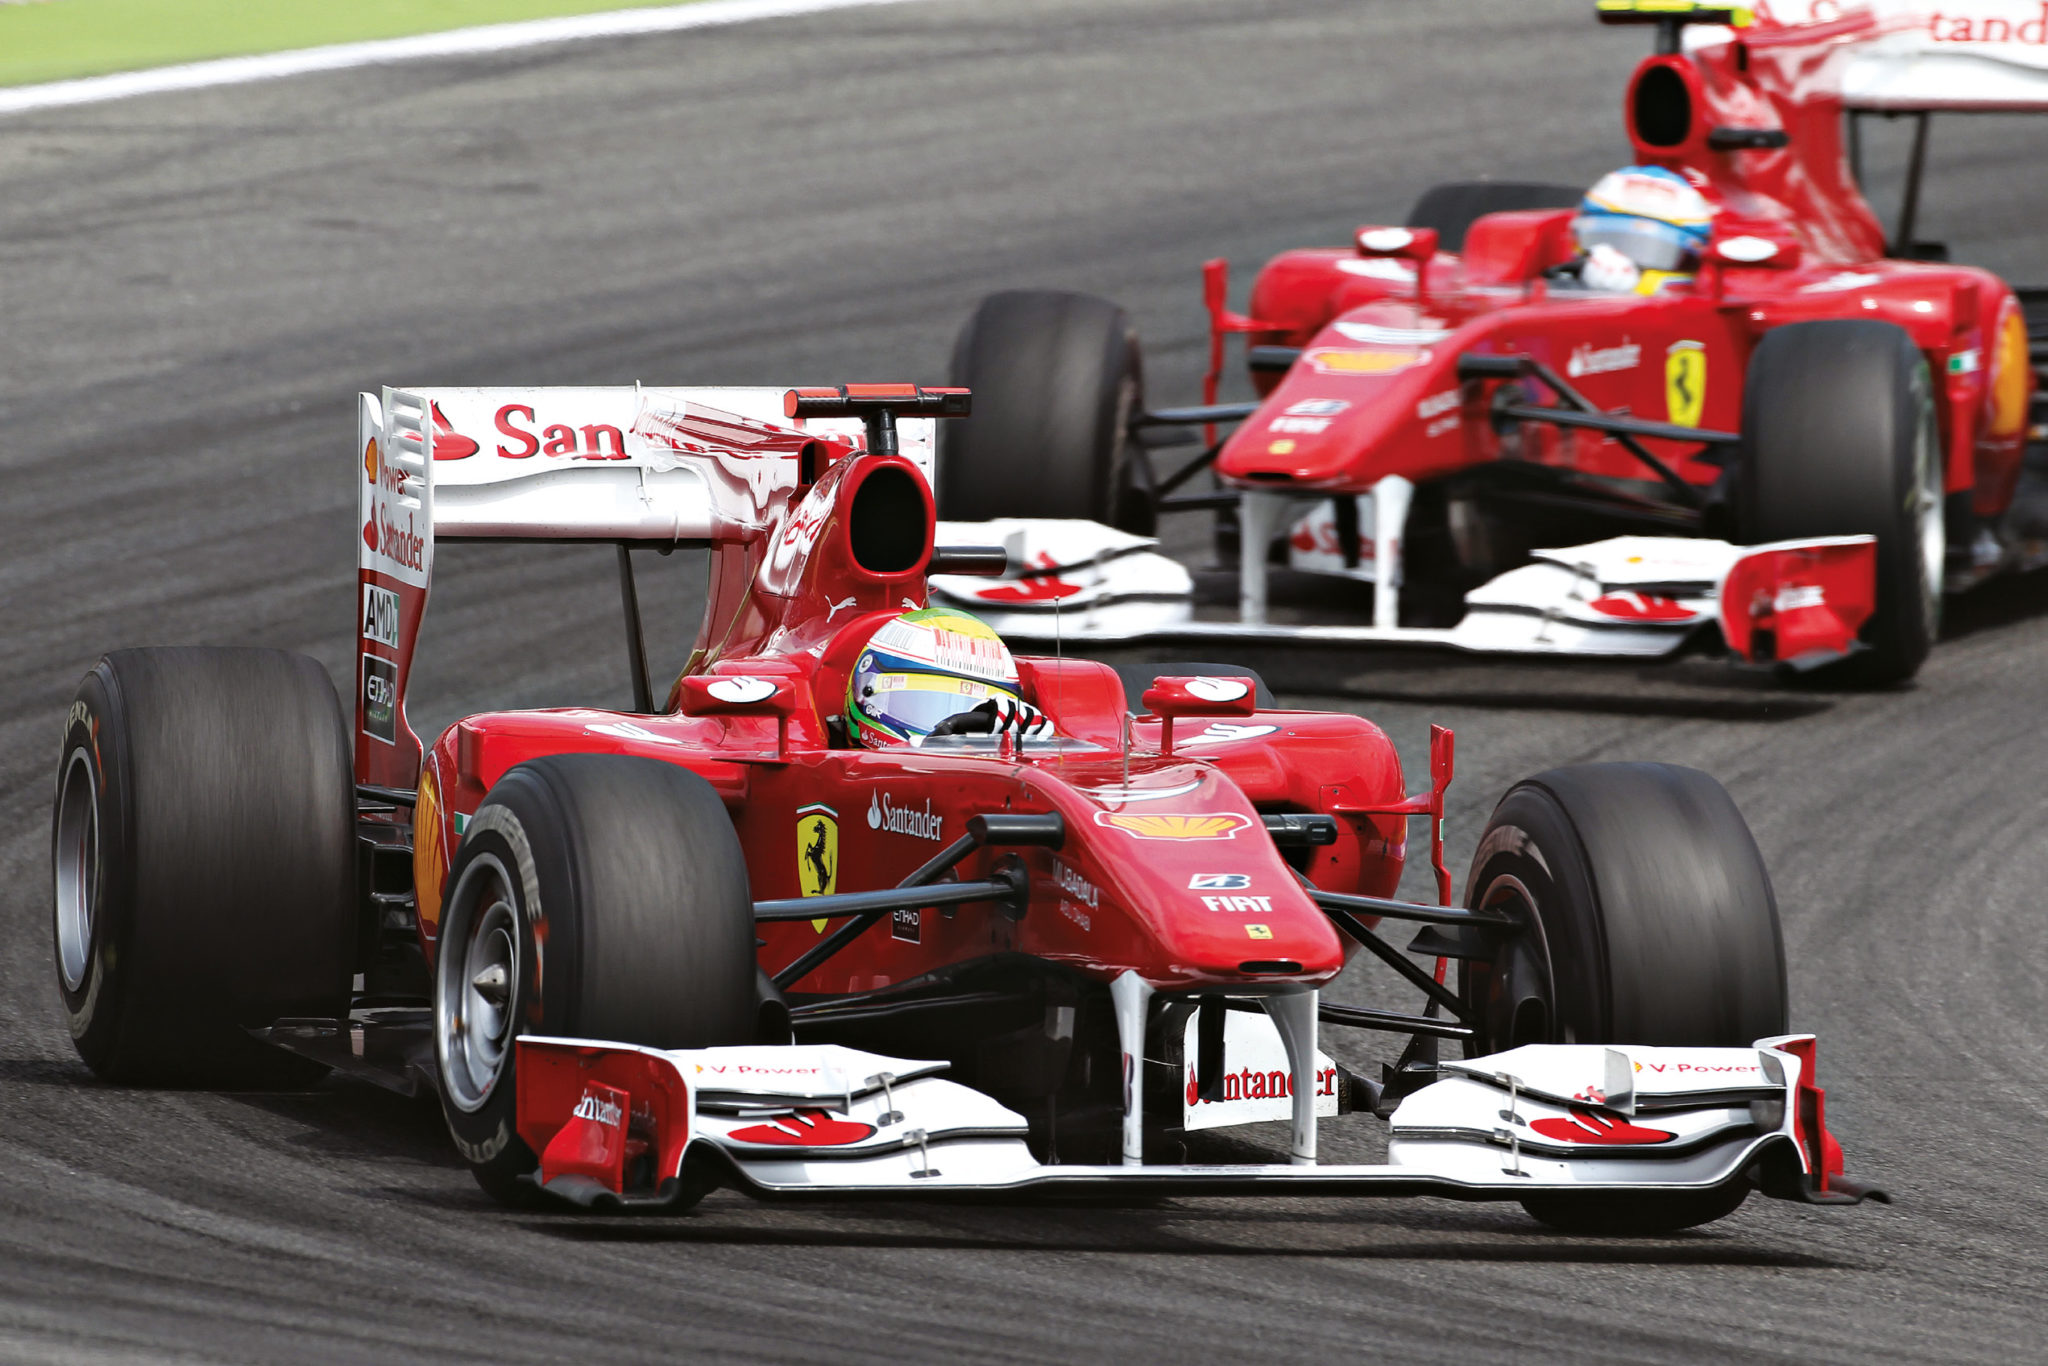 """""""Felipe, Fernando is faster than you – do you understand?"""" Germany 2010, before the swap"""